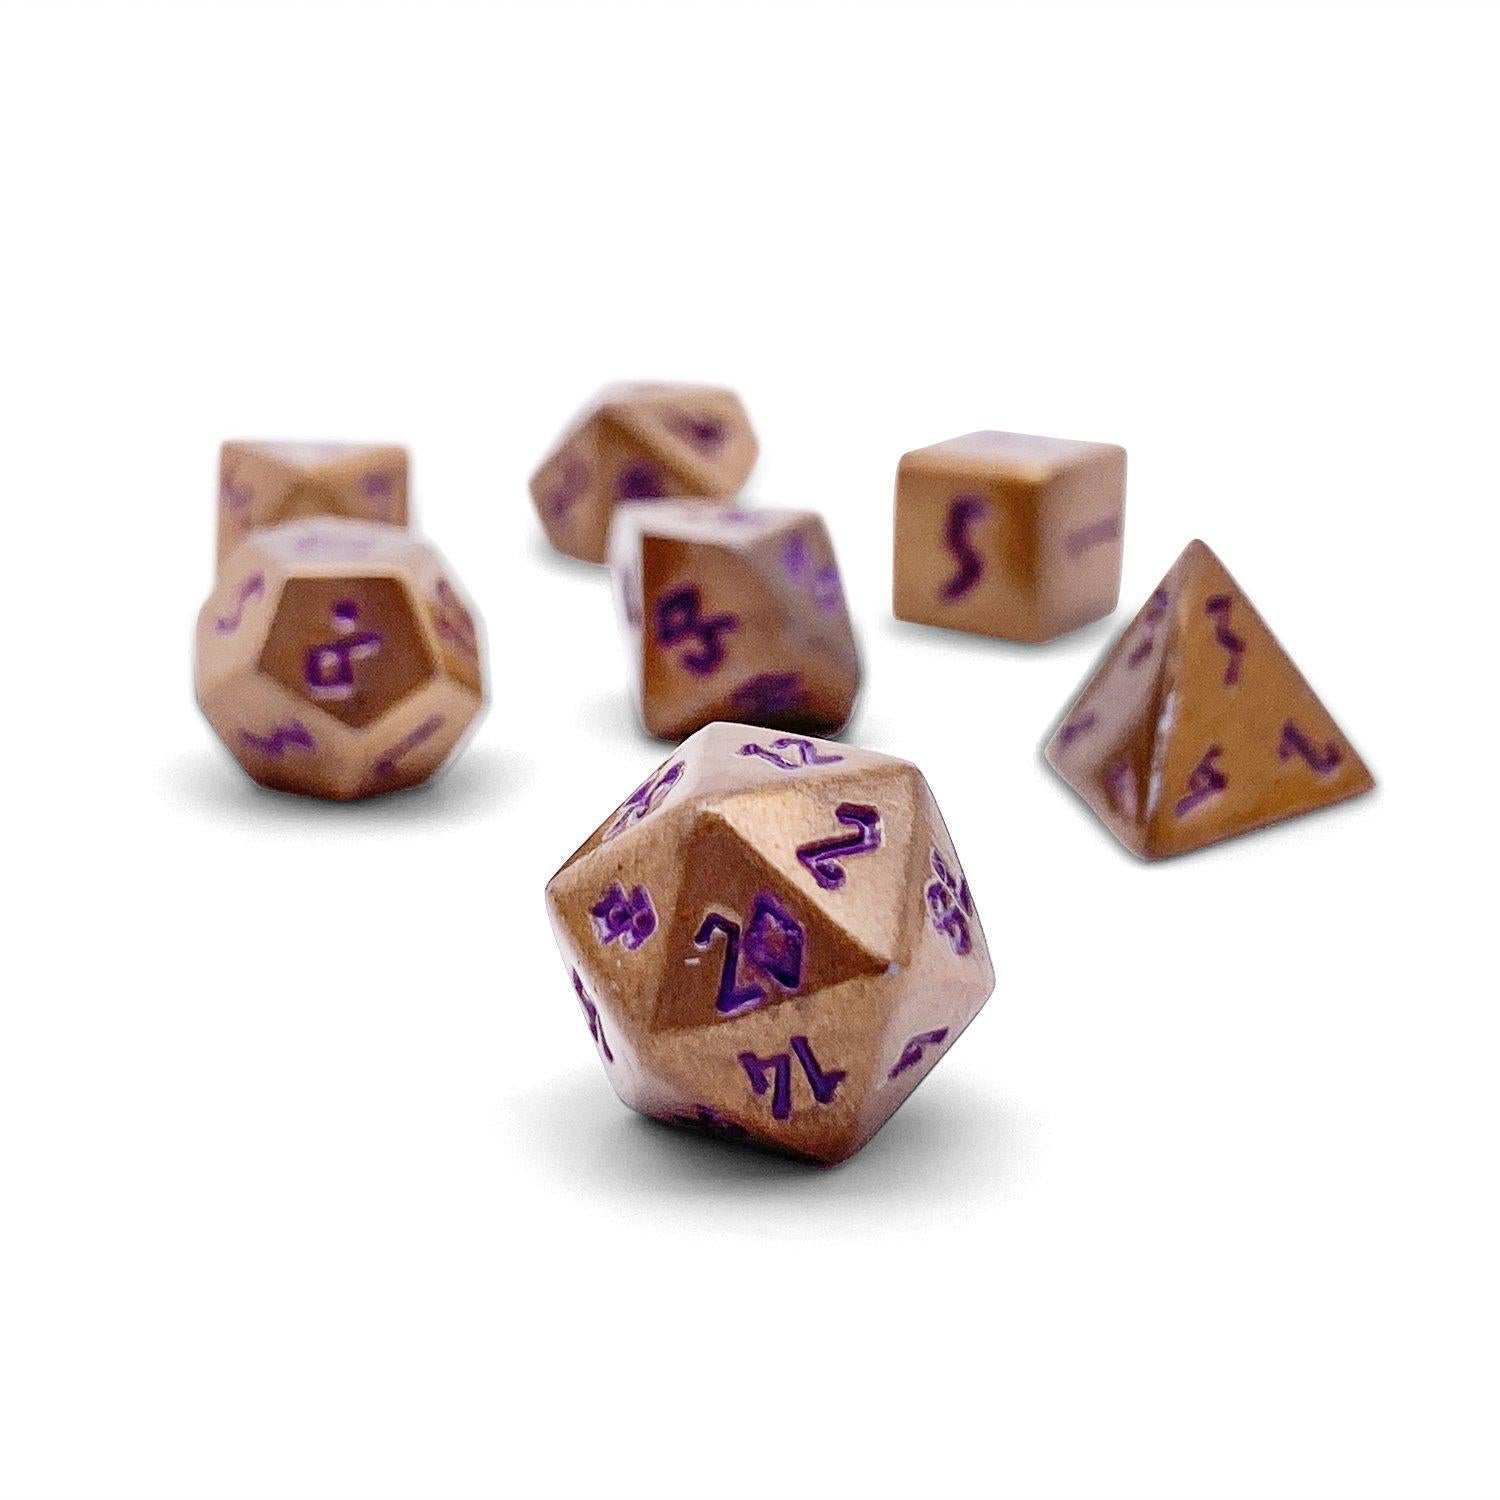 Mystic Copper Pebble ™ Dice - 10mm Alloy Mini Polyhedral Dice Set